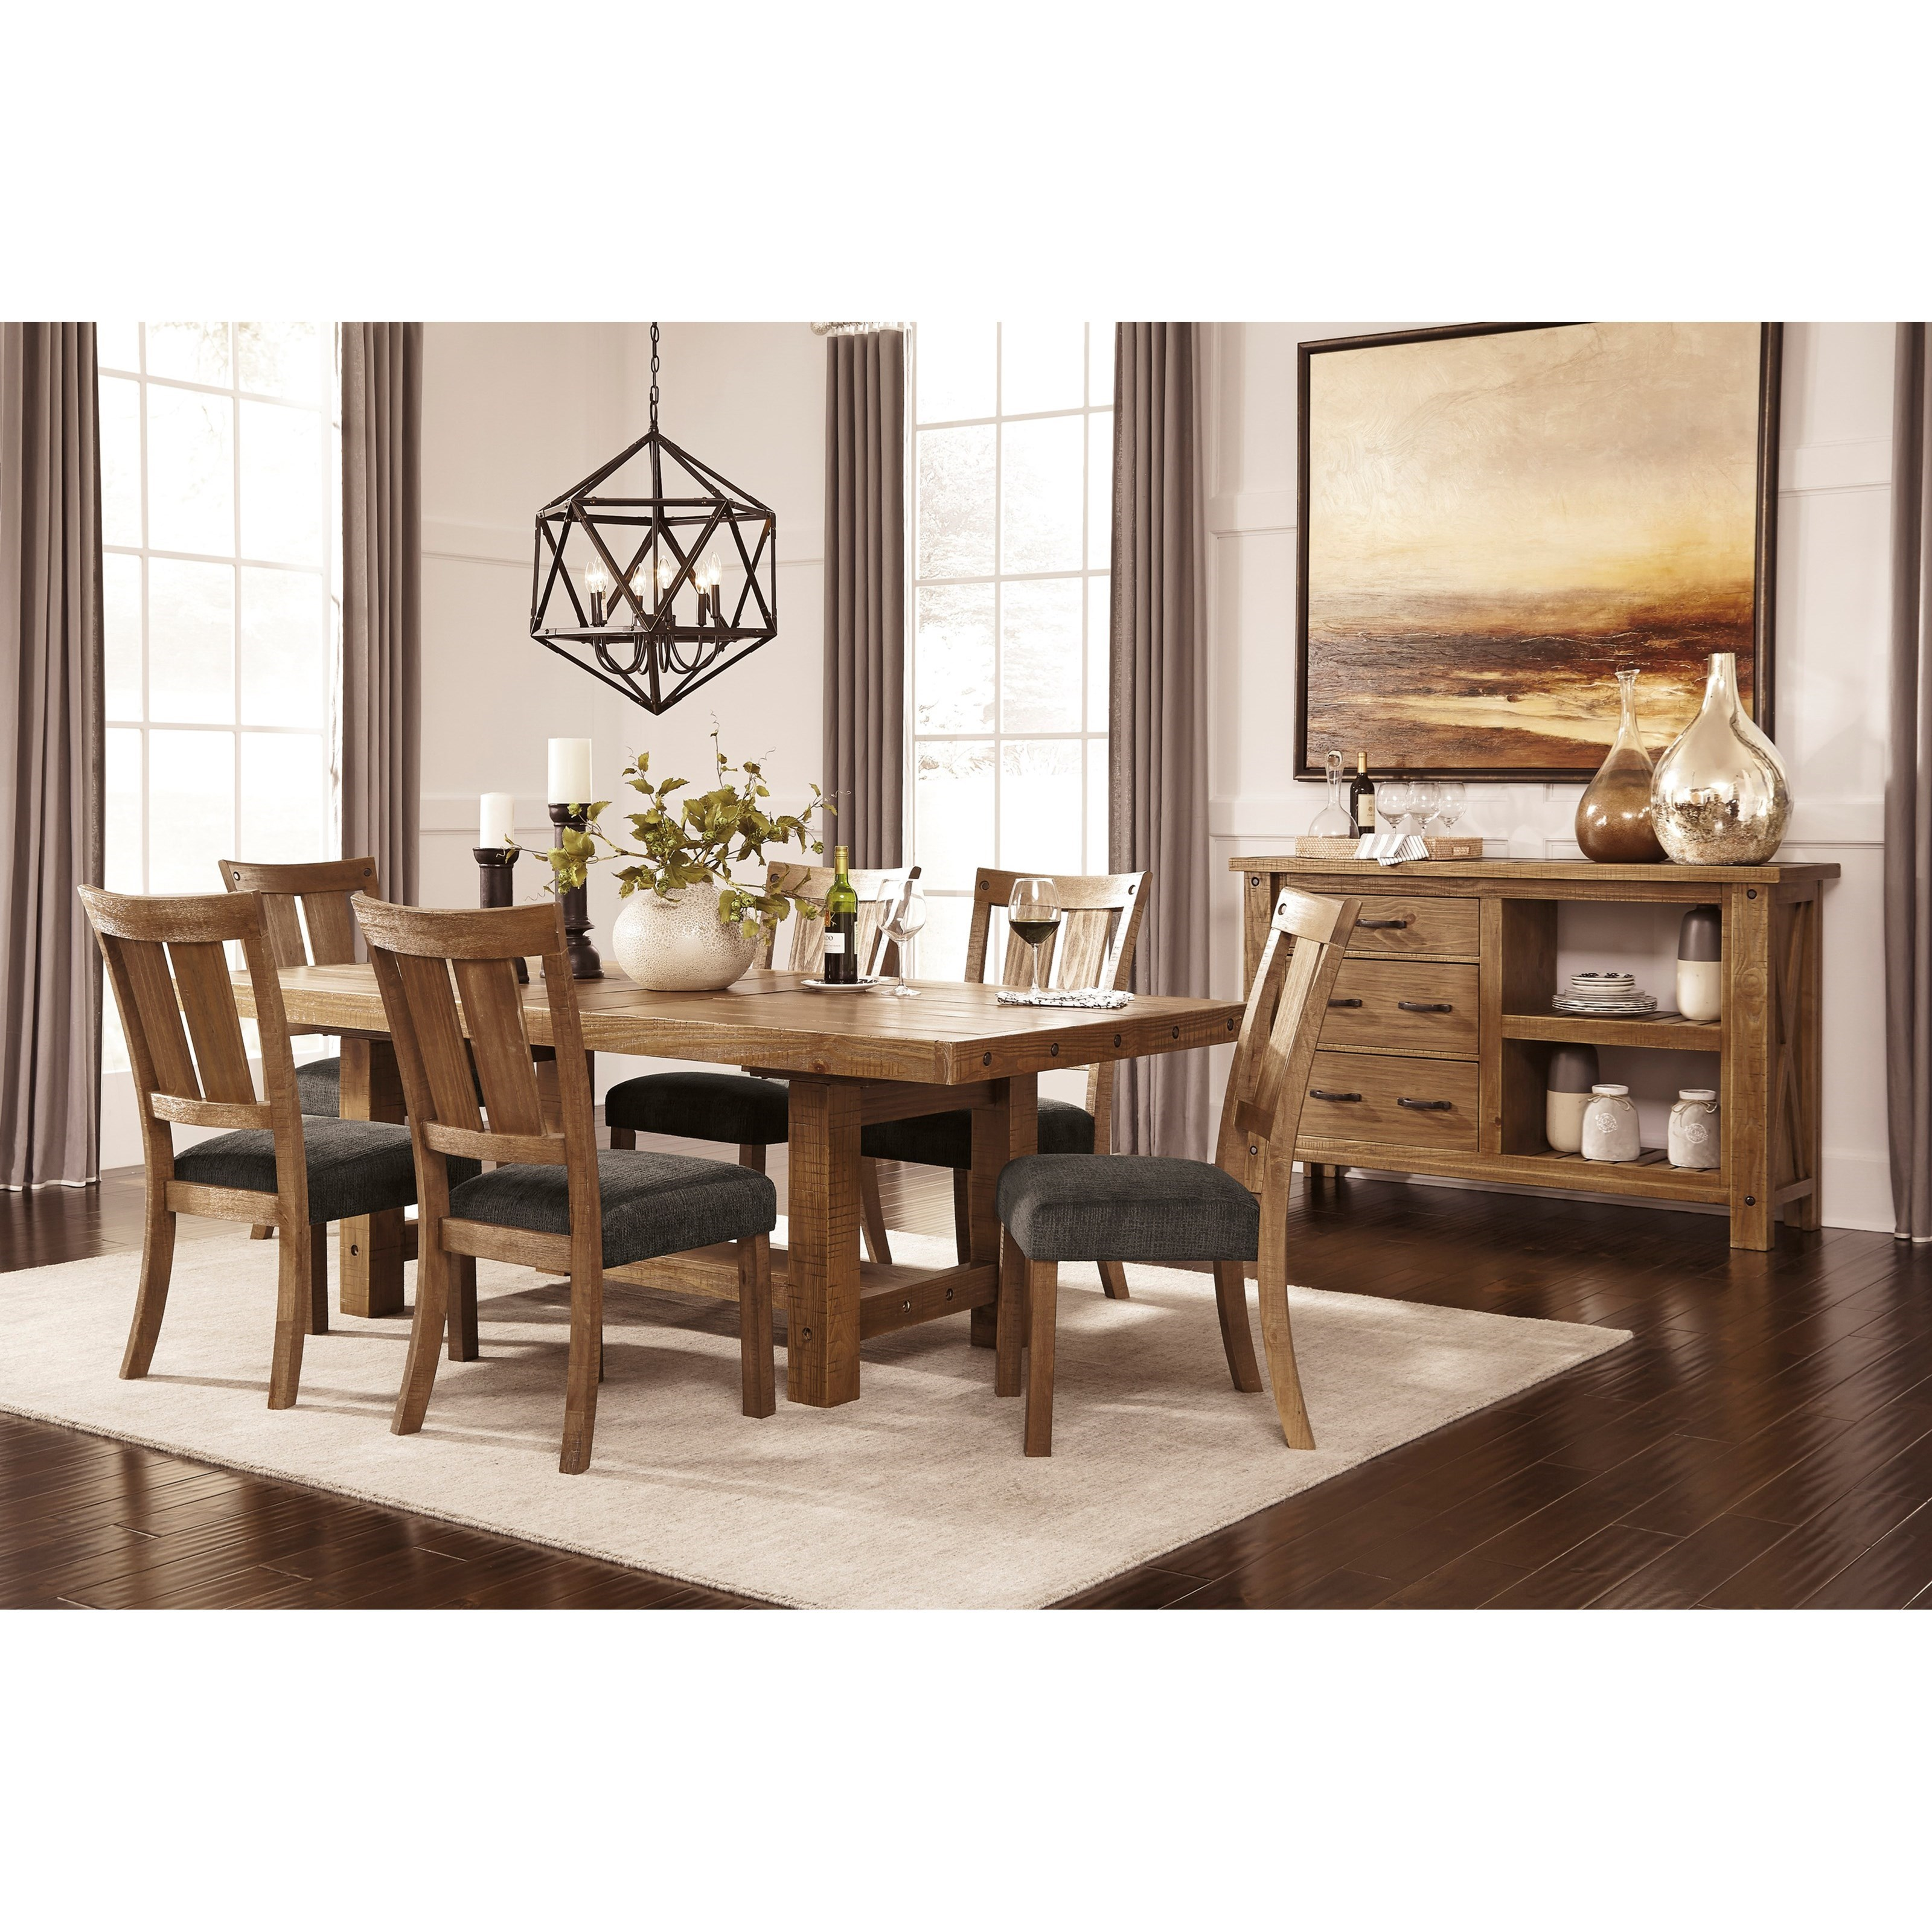 Signature Design By Ashley Tamilo D714-45 Rectangle Dining